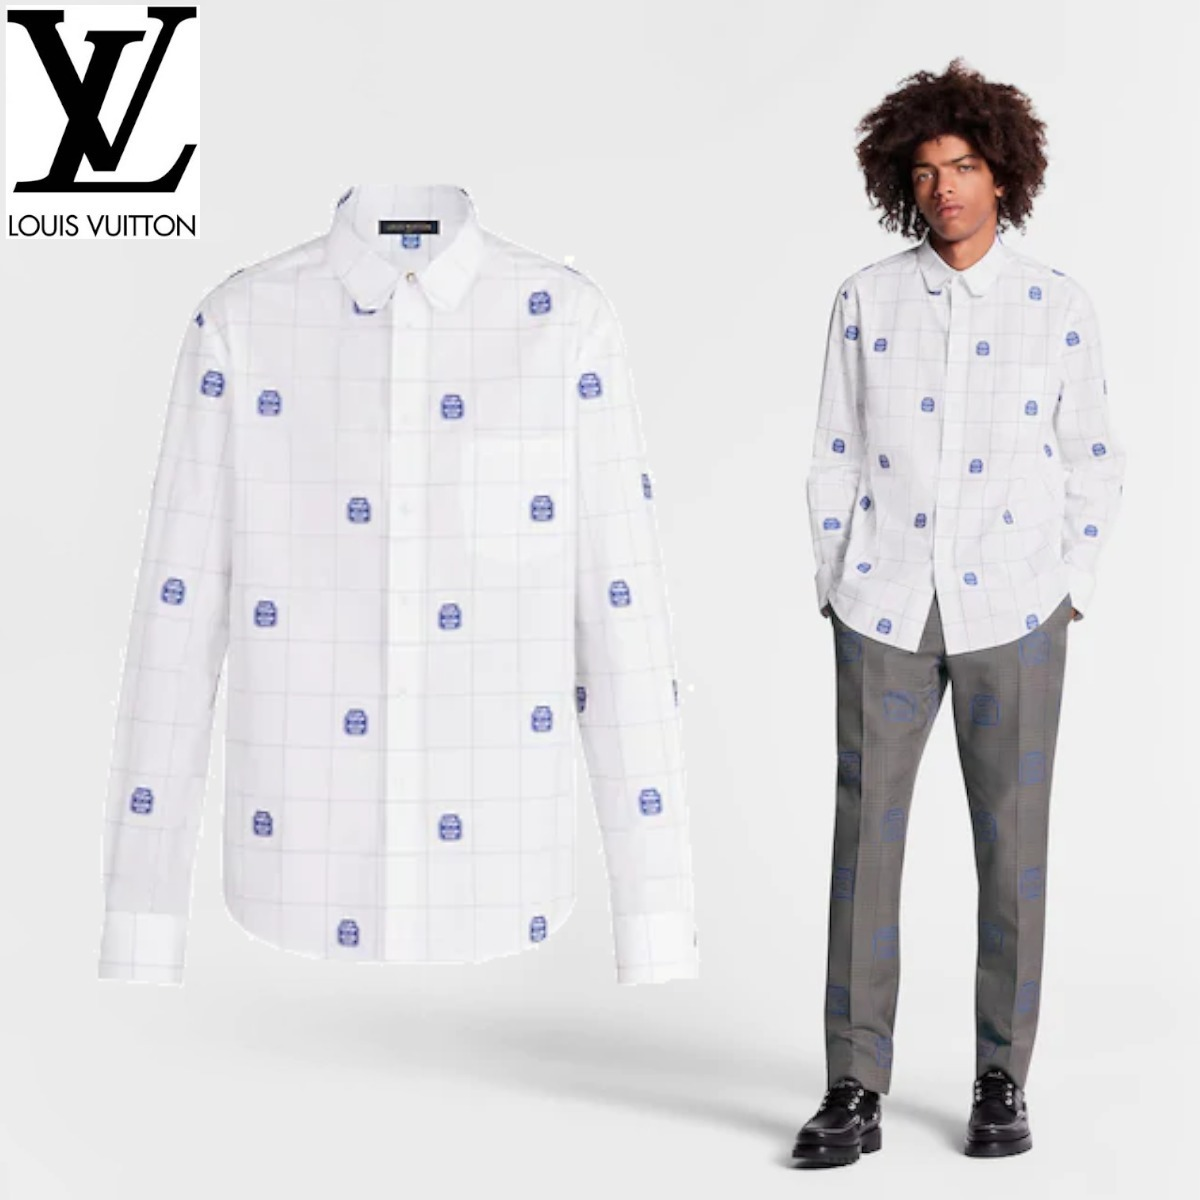 20SS☆【国内発送】LVレッグシャツウィズDNAカラー/すぐ届く♪ (Louis Vuitton/シャツ) 1A5W4P